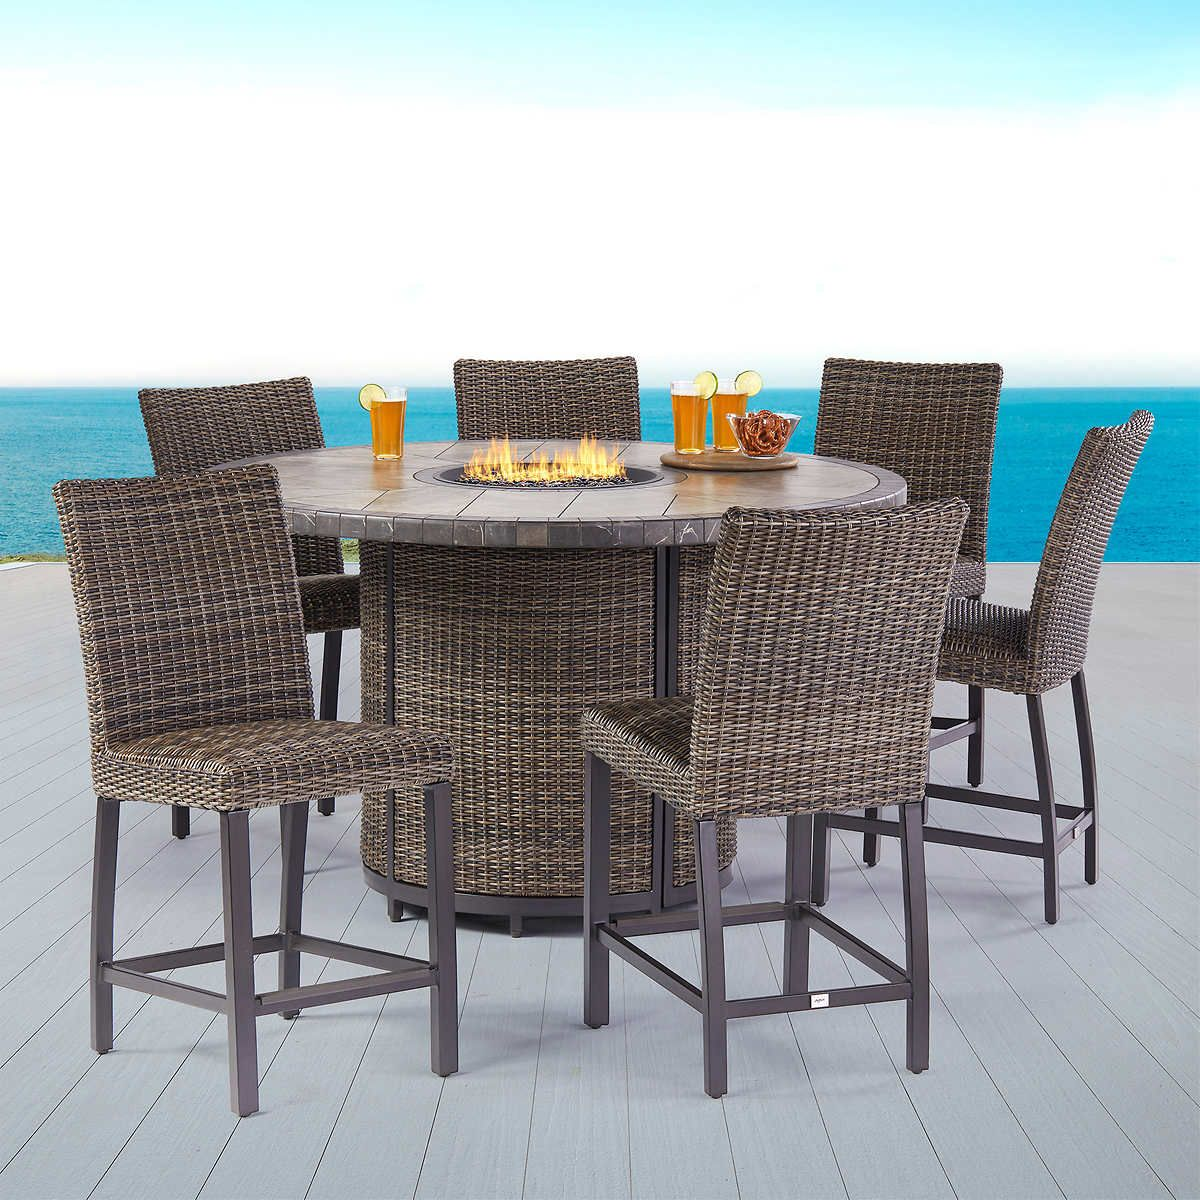 Springdale 7 Piece High Dining Set With Firetable In 2020 Dining